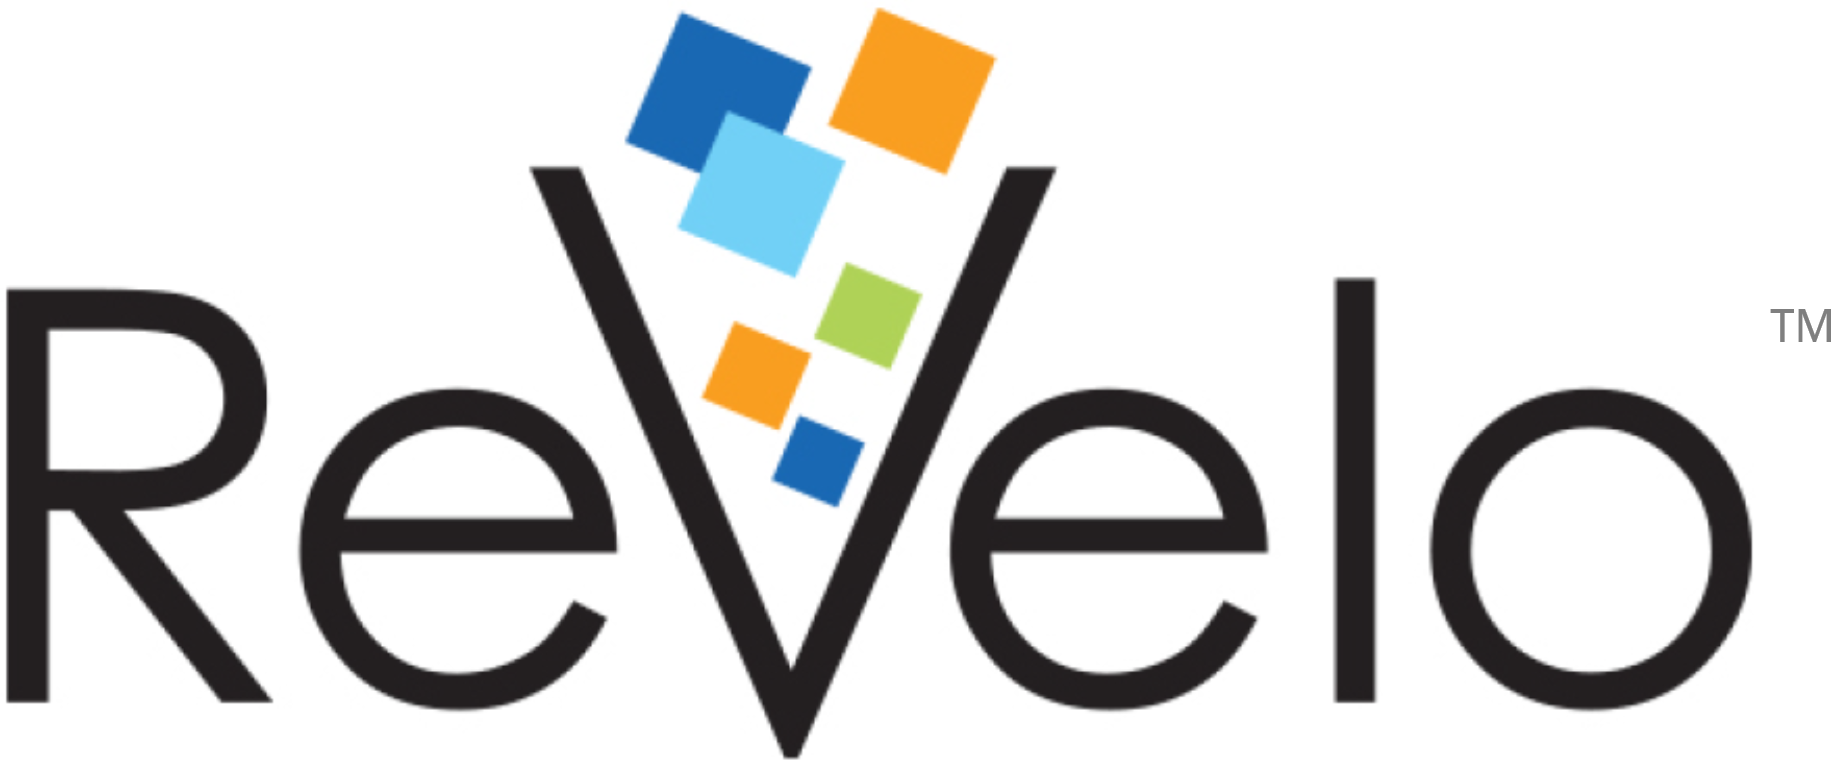 ReveloSoftware